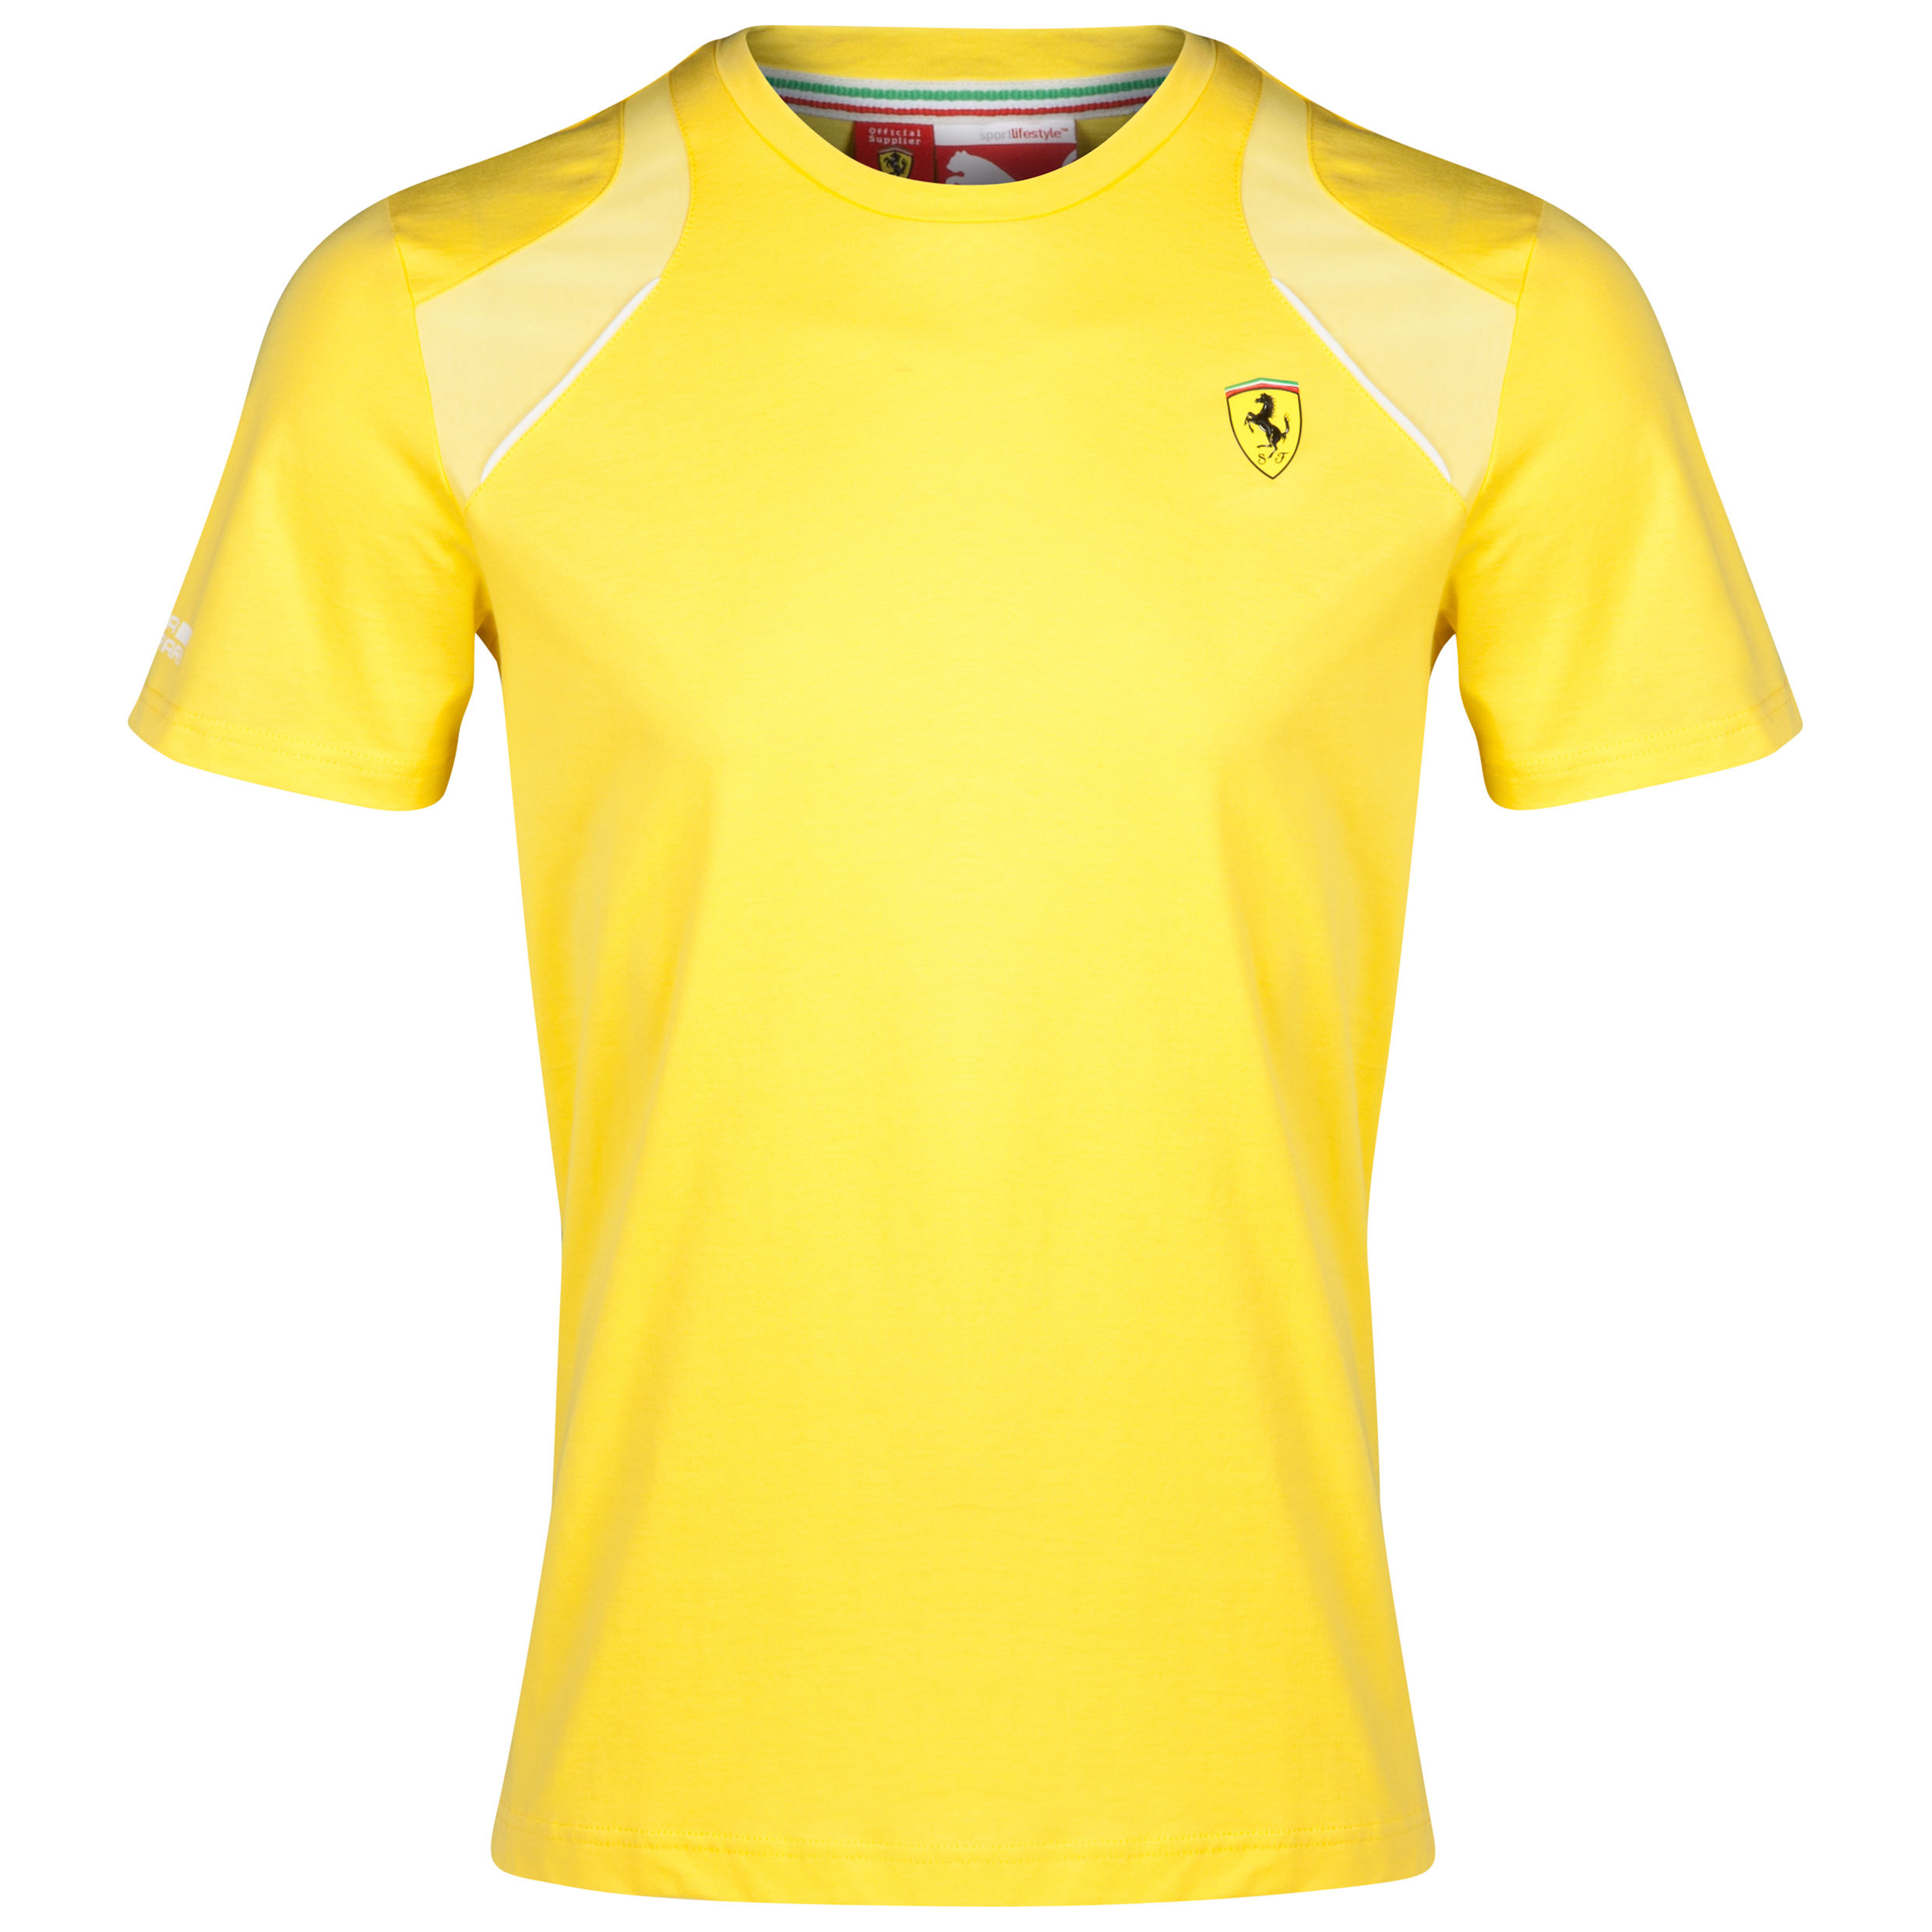 Scuderia Ferrari T-Shirt Yellow